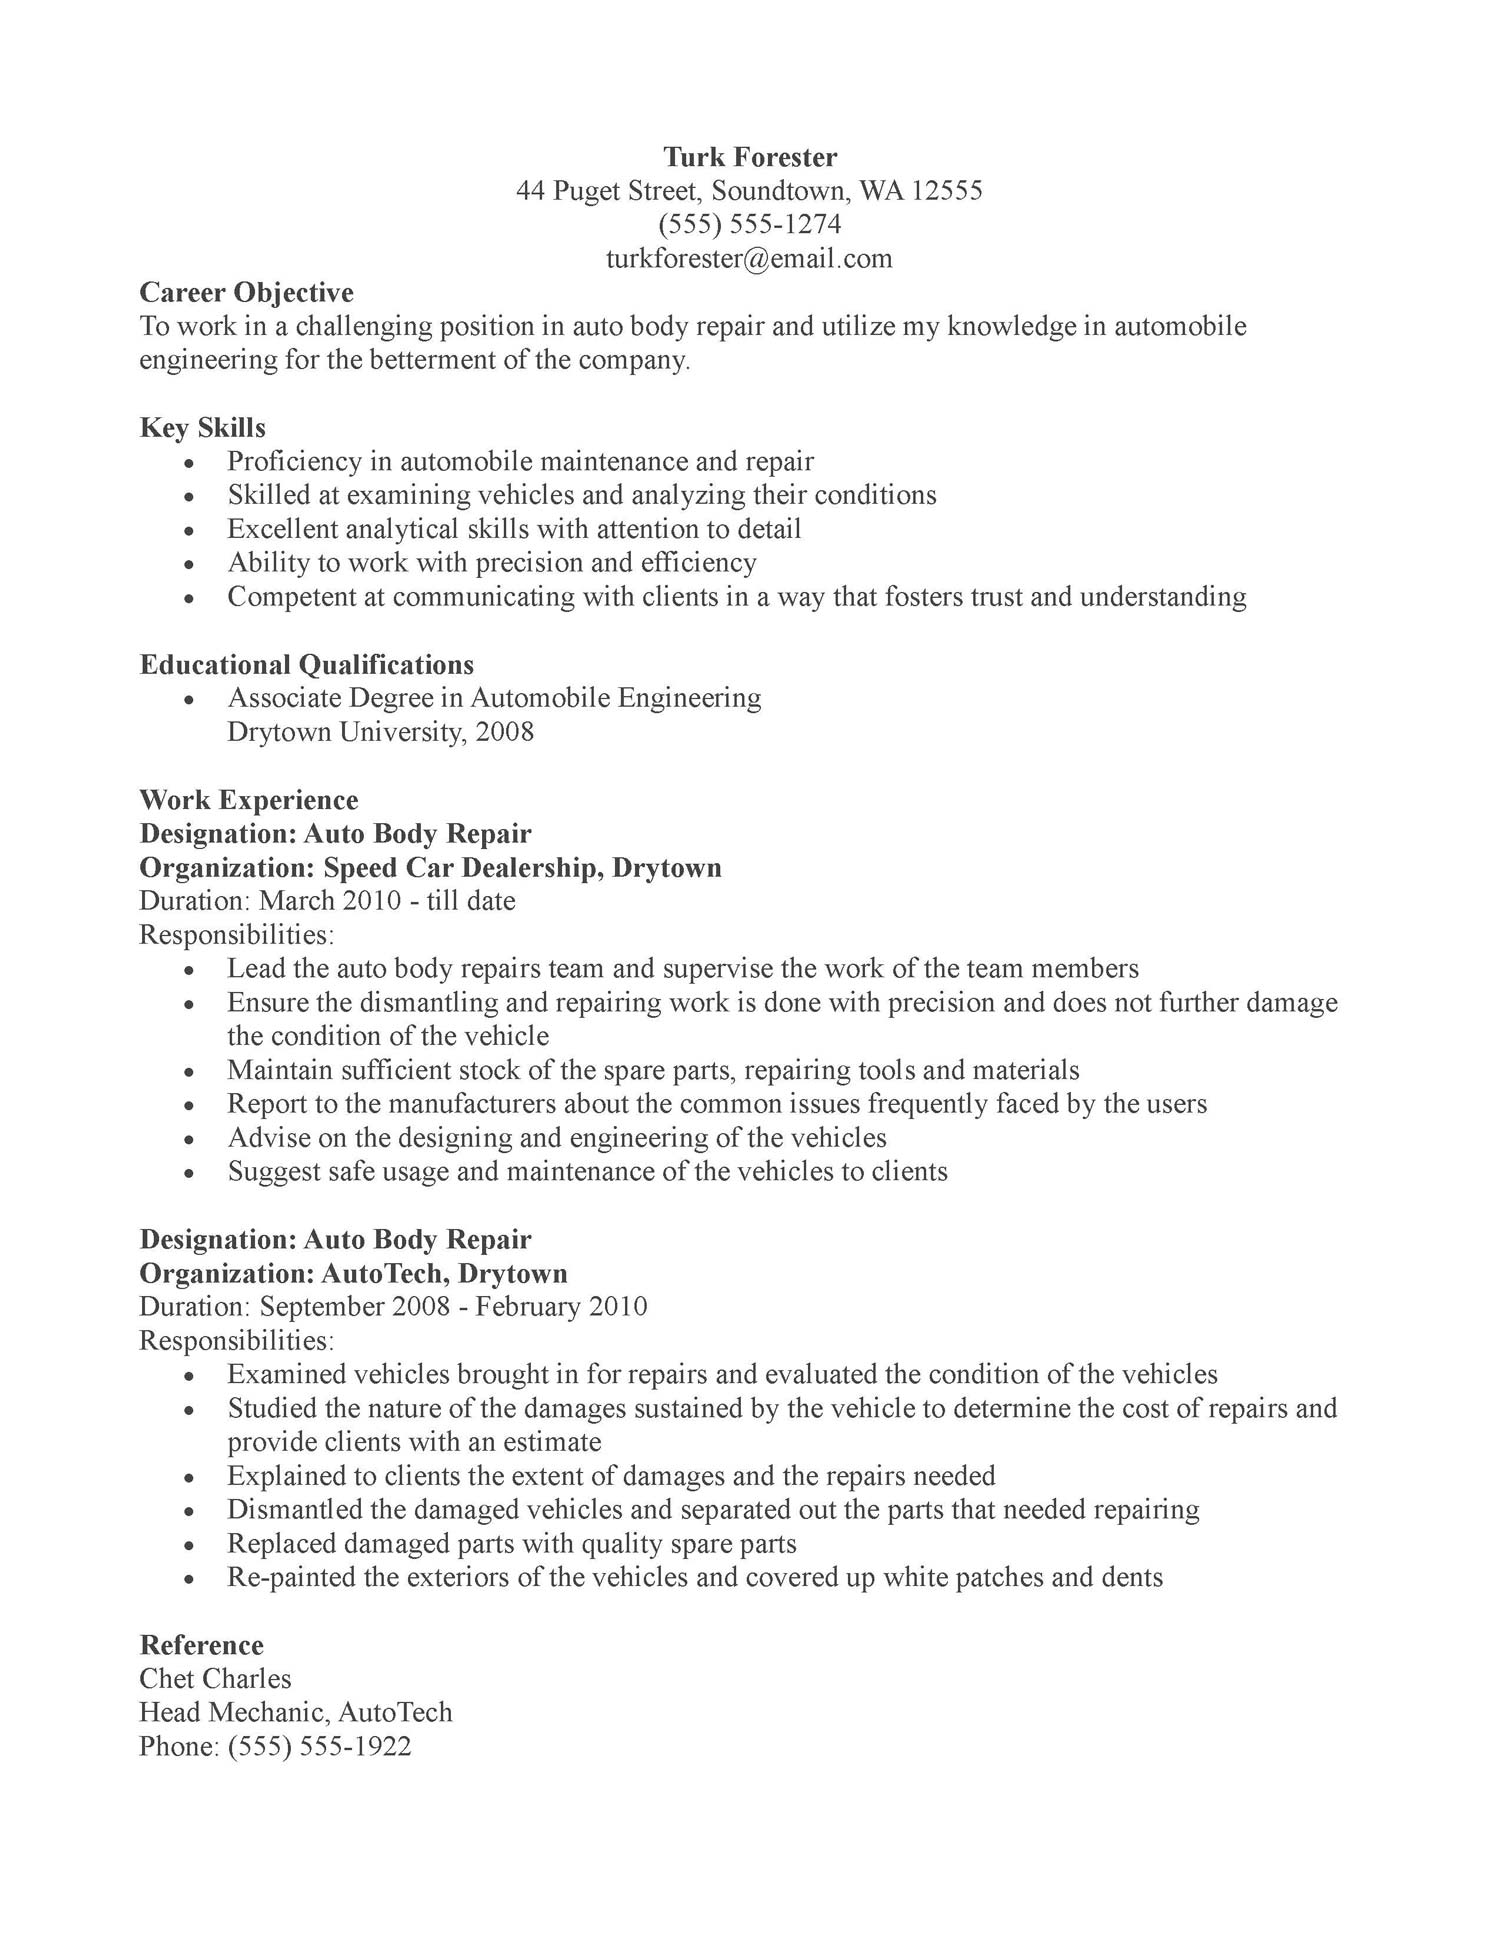 Free Resume Templates With Photo Real Estate Duties Resume Lift Technician Resume Model Health Informatics Resume Objectives Technical Expertise Examples Resume Strong Leadership Skills Resume Portfolio Vs Resume Portfolio Vs Resume Entry